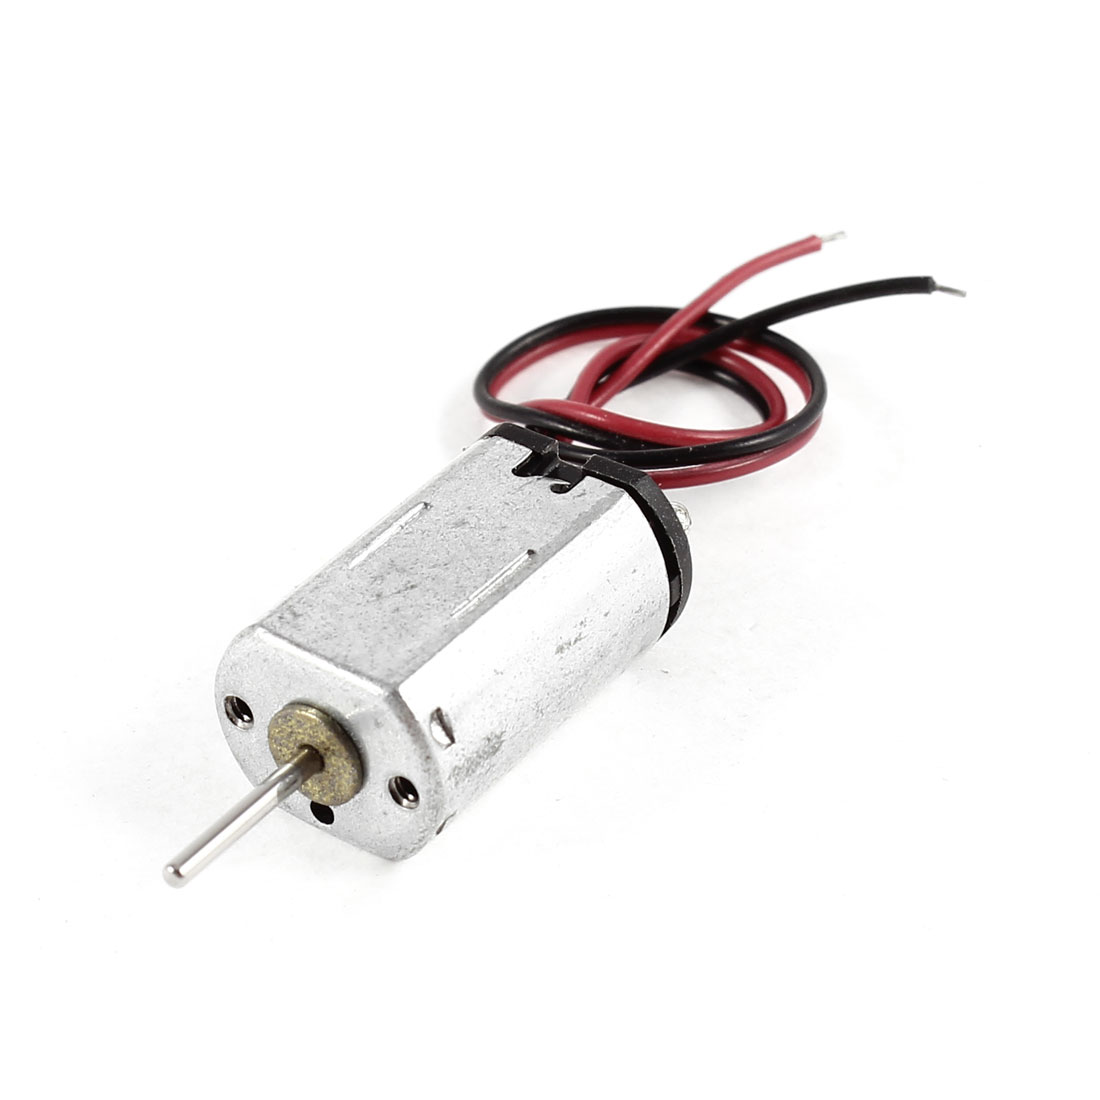 DC 1.5-6V 4000RPM 1x9mm Shaft Mini Motor for RC Model Toys DIY